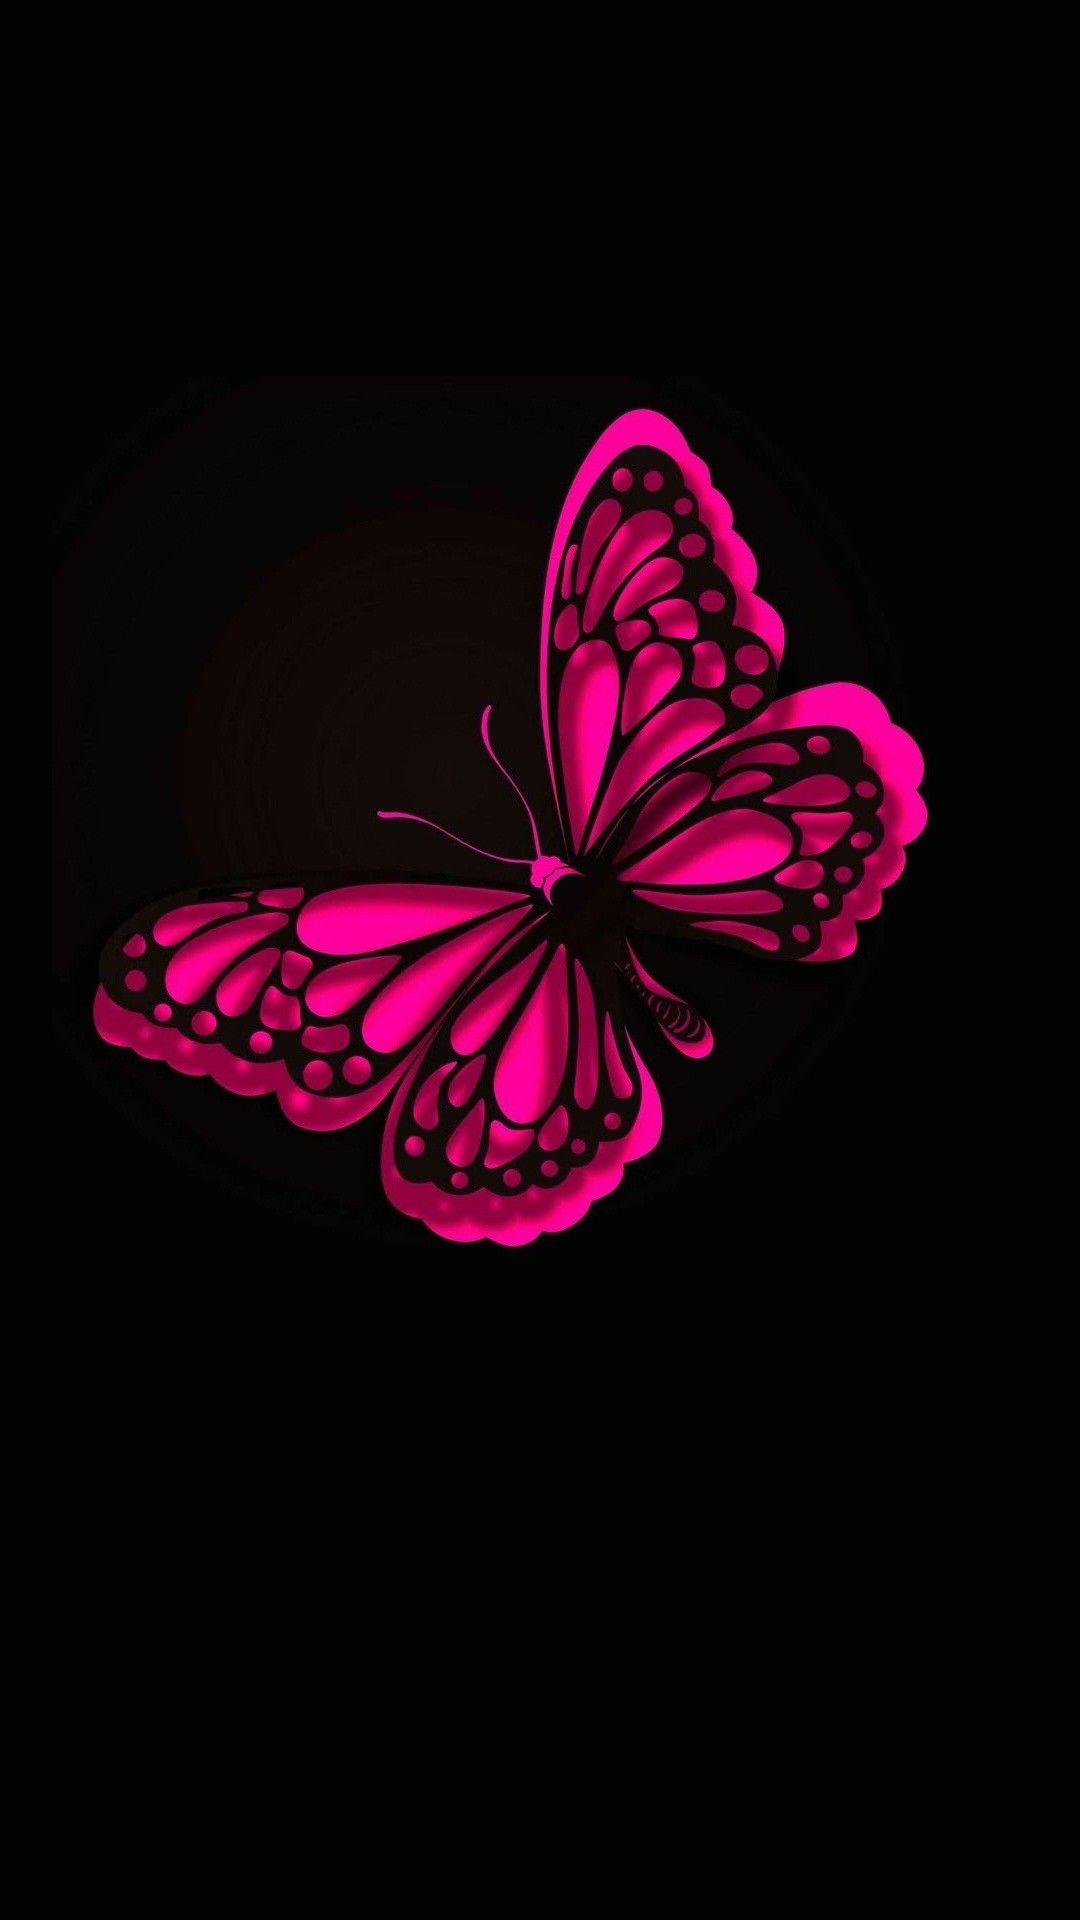 Butterfly You Are Real Wallpaper Backgrounds In 2019 Butterfly